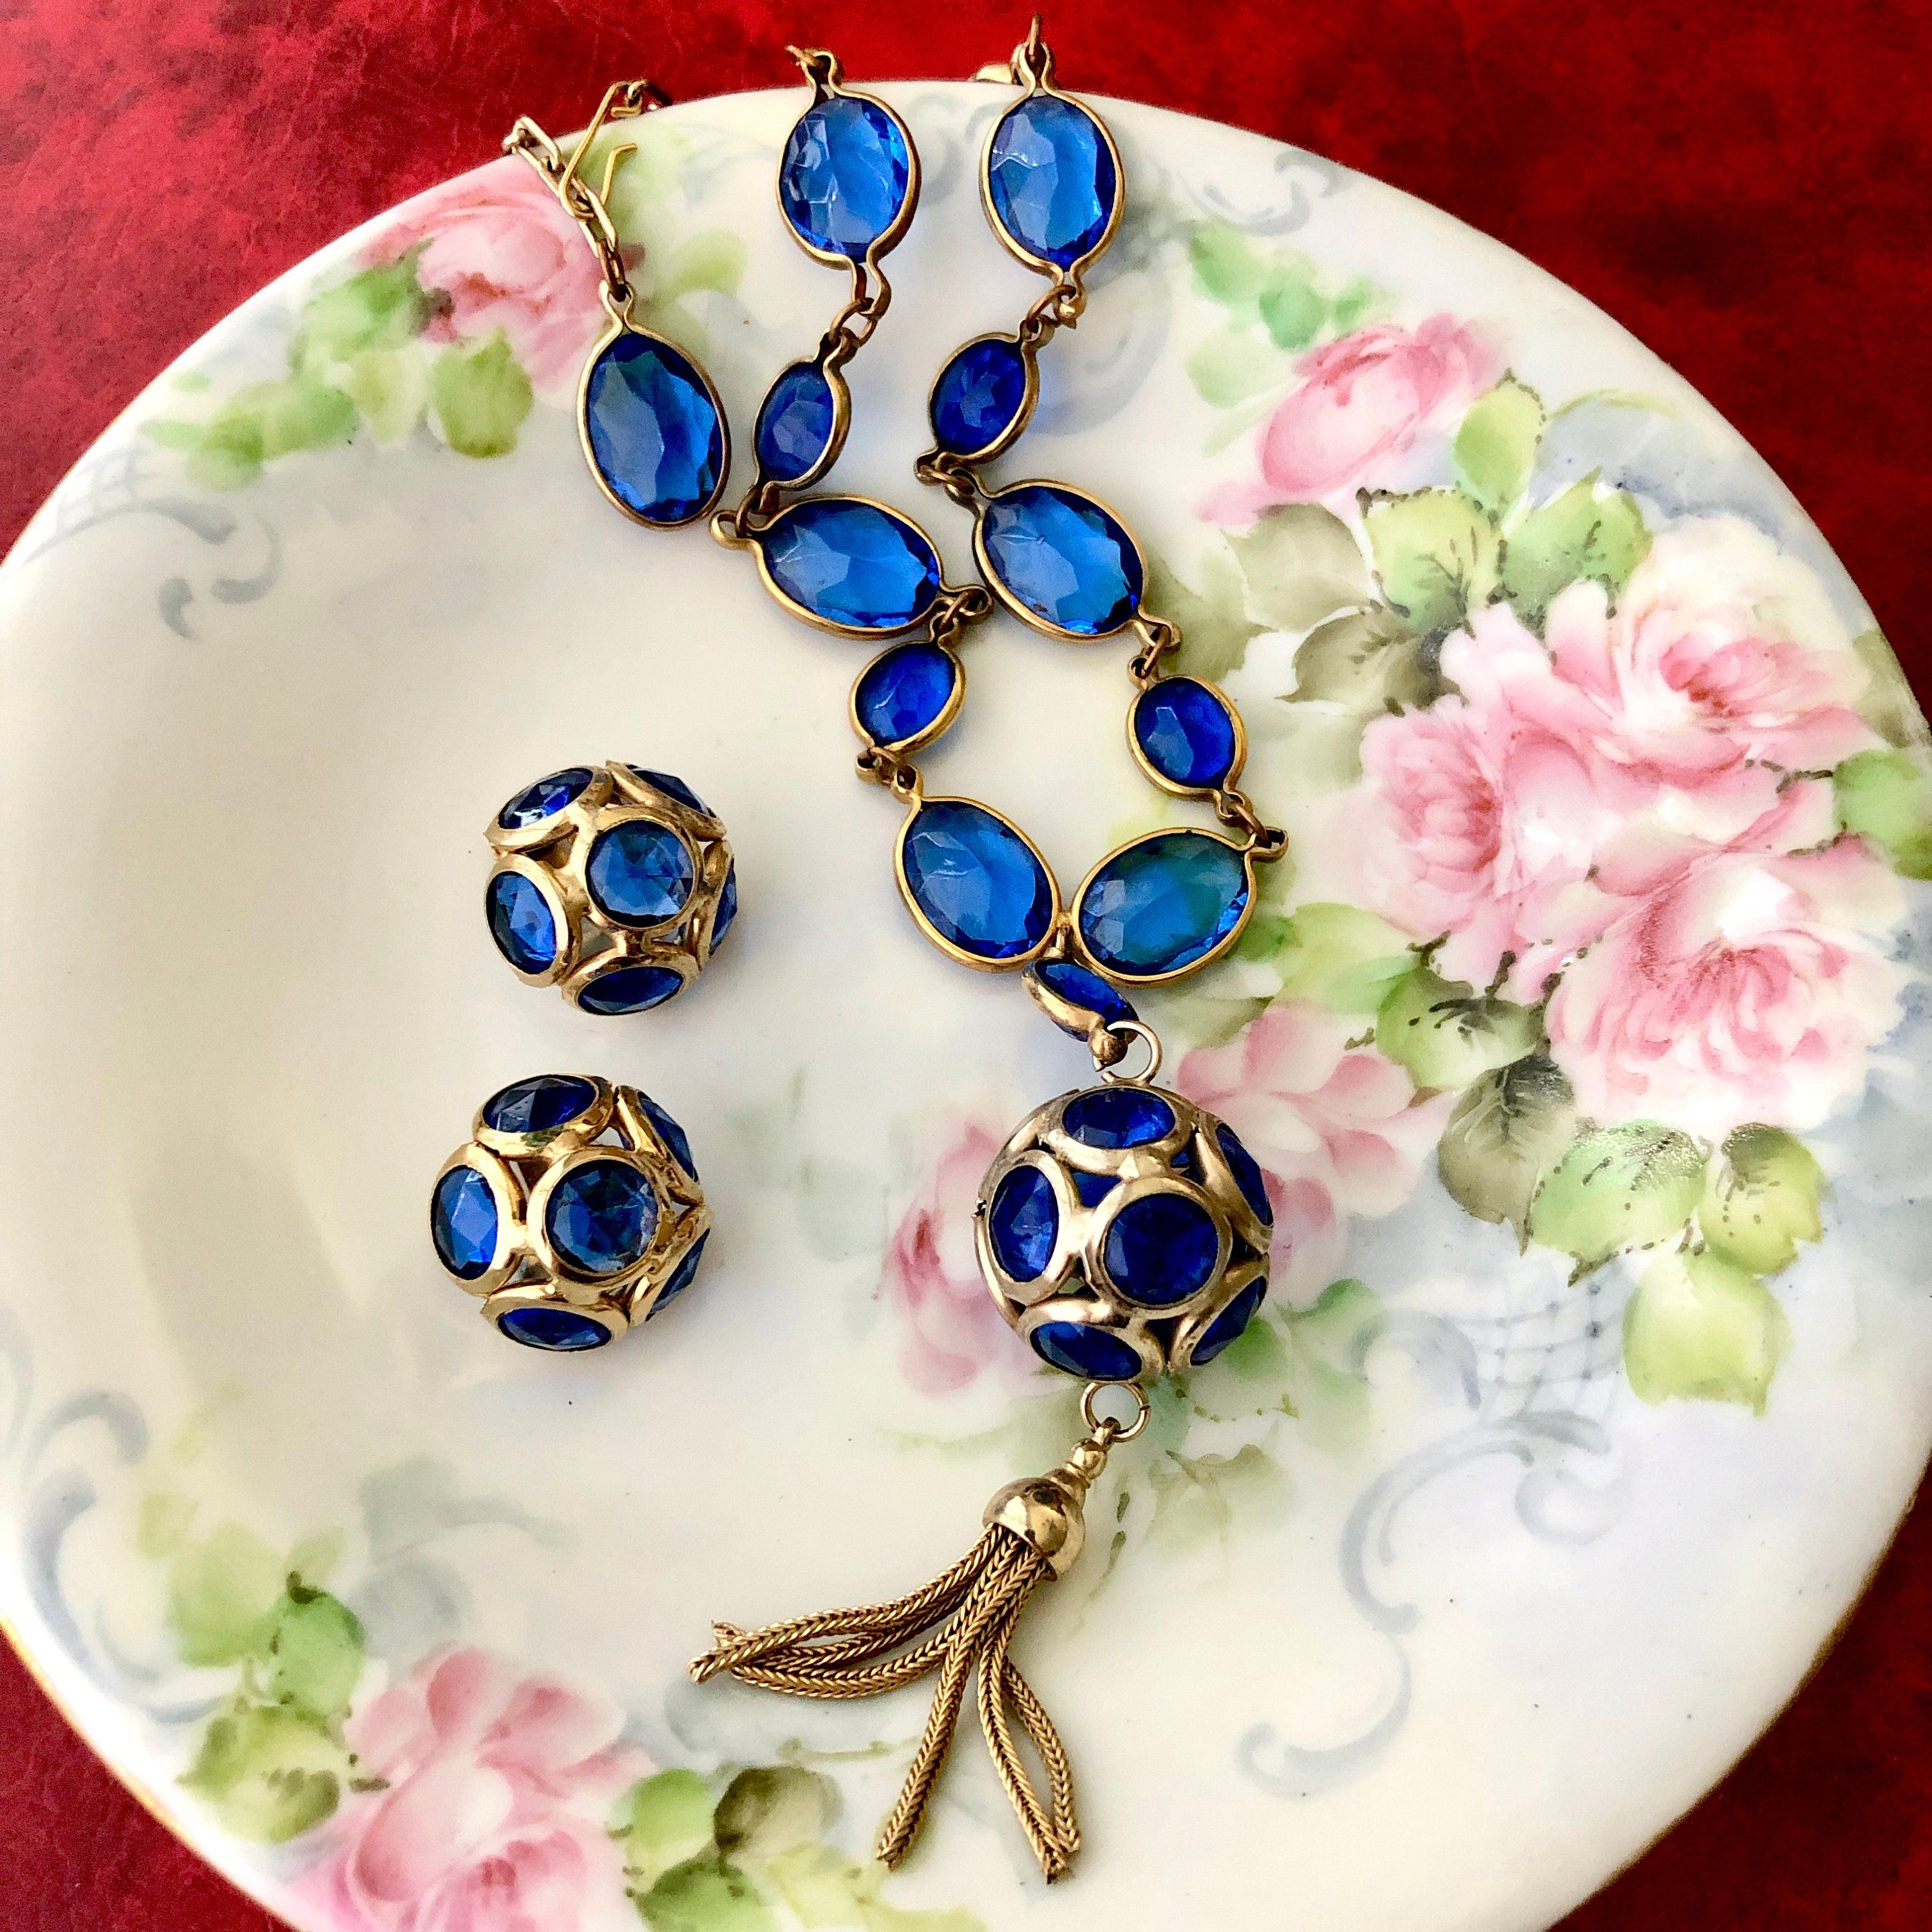 1931b1aaa Vintage Cobalt Blue Faceted Glass Pendant Necklace Clip On Earrings Bezel Set  Necklace Tasseled Round Orb Pendant Statement Jewelry Set